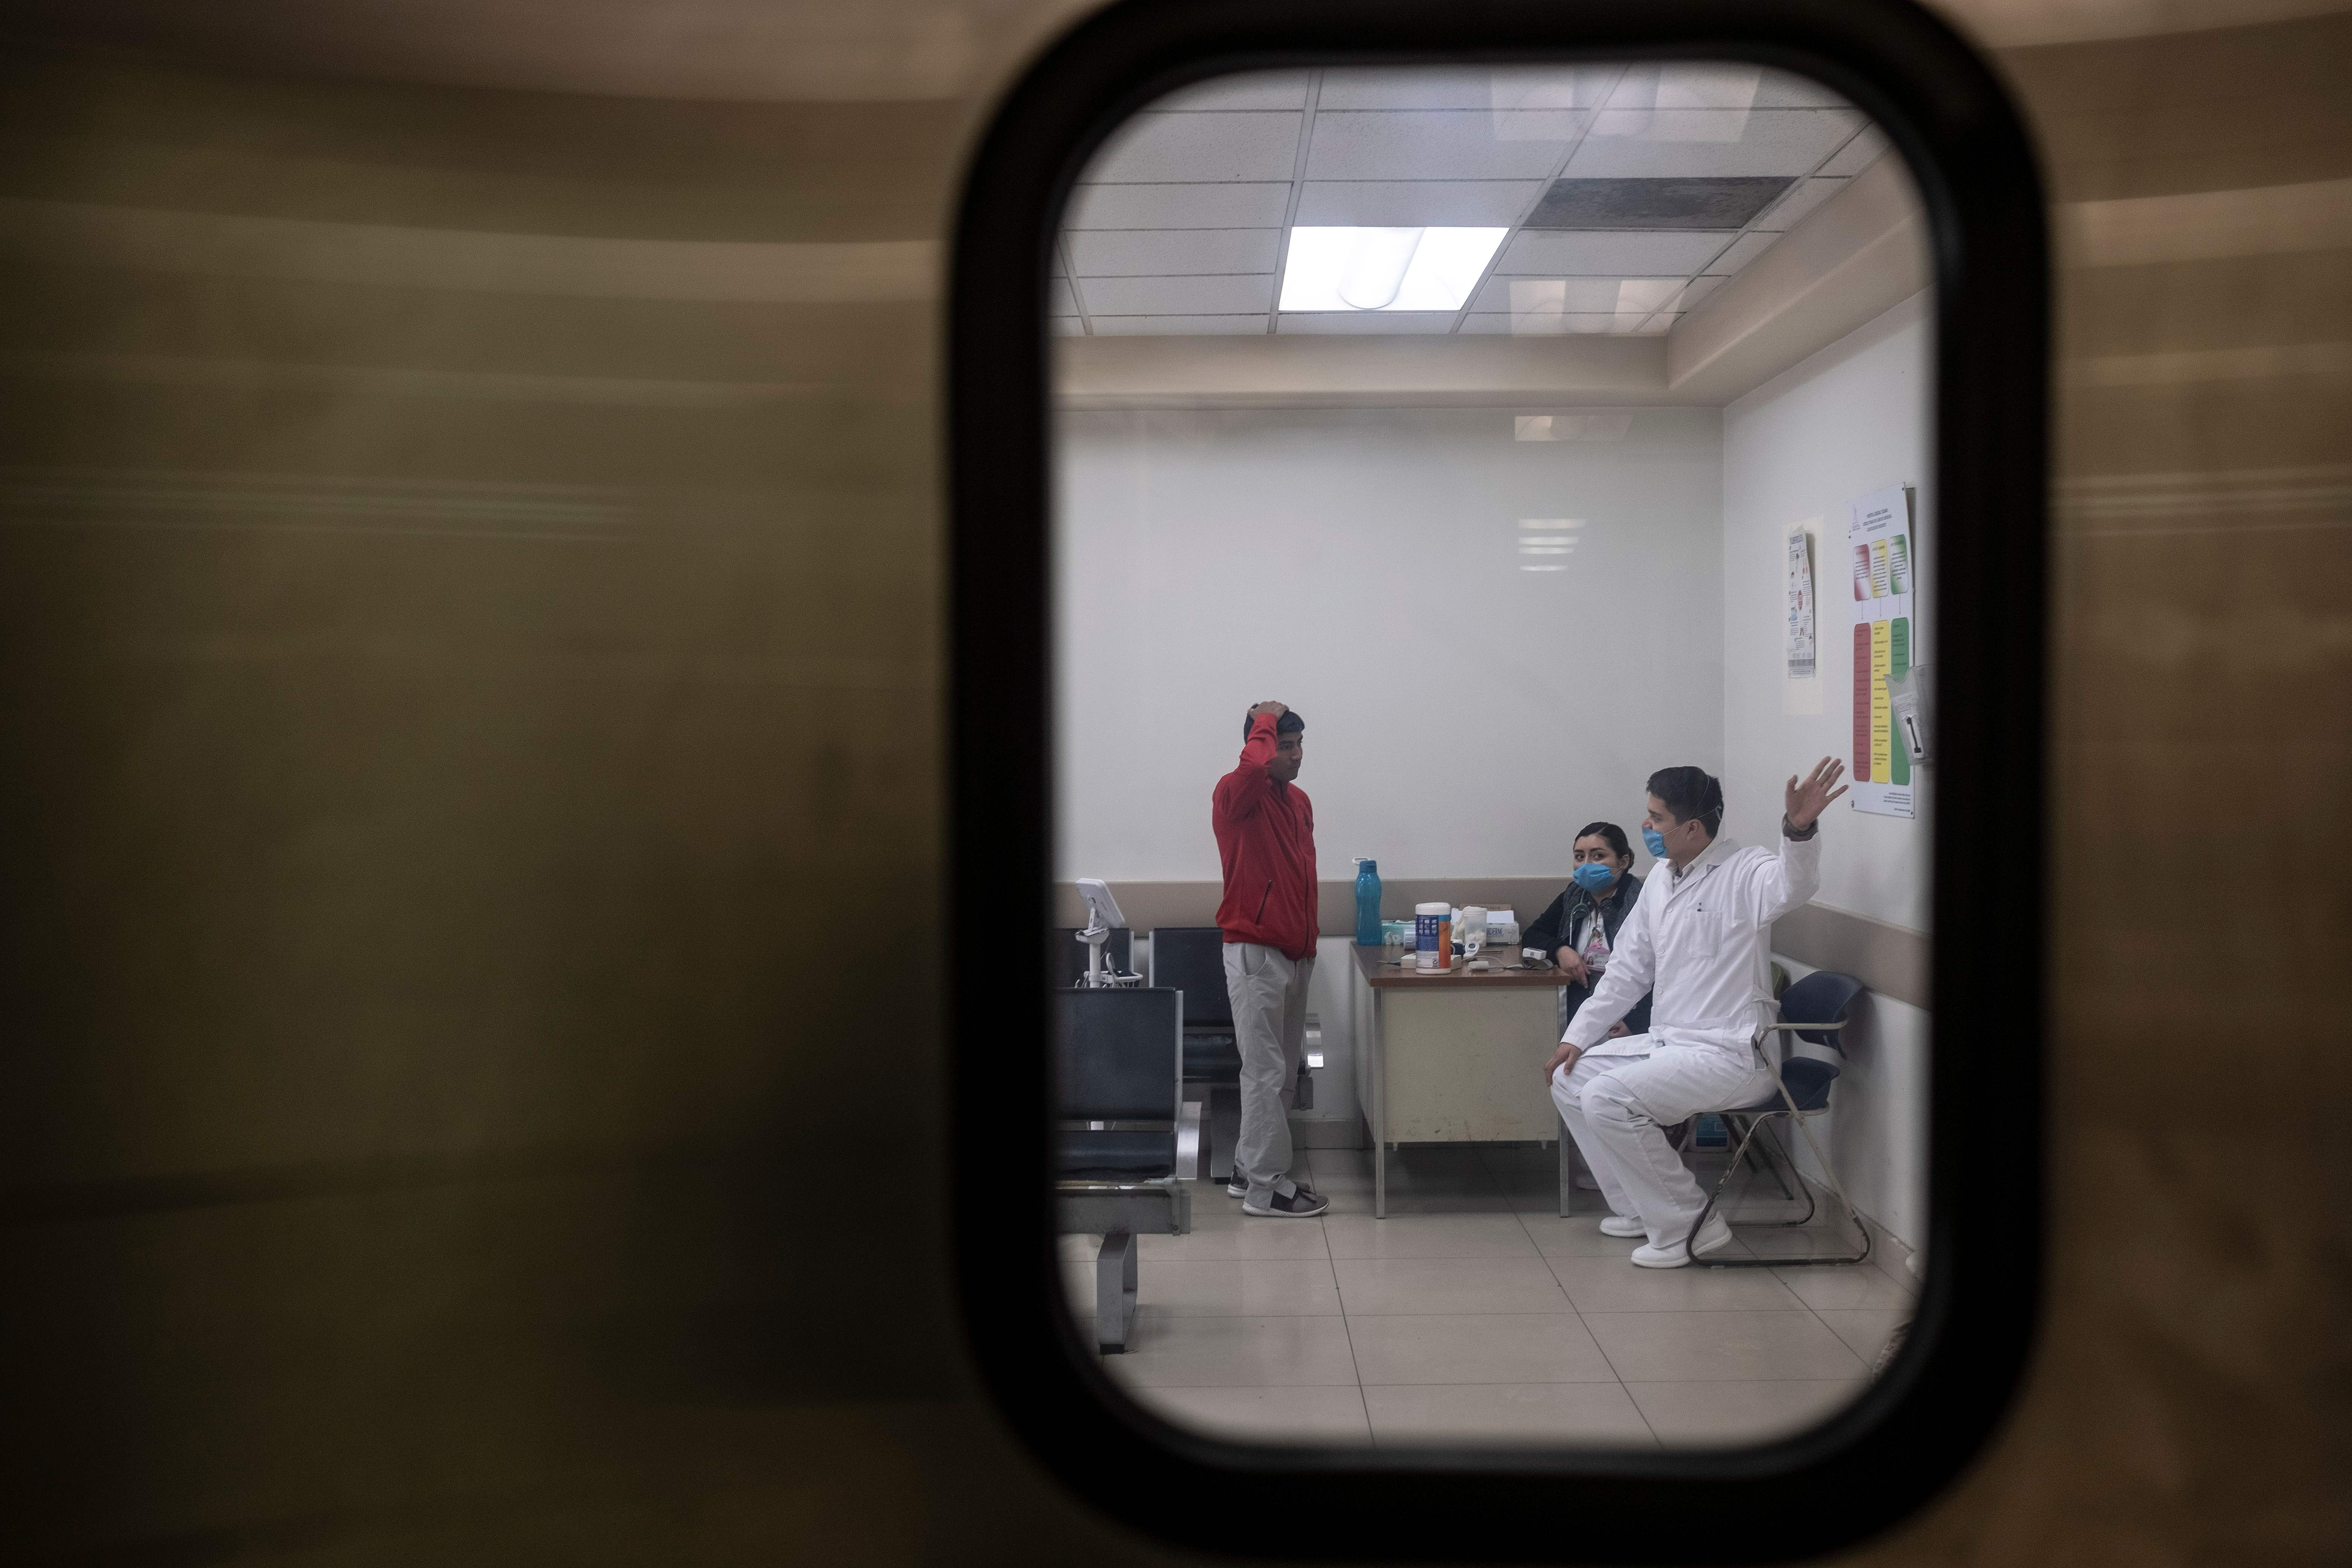 A doctor gives directions to a an arriving patient at a hospital in Tijuana, Mexico, on March 2, 2020.